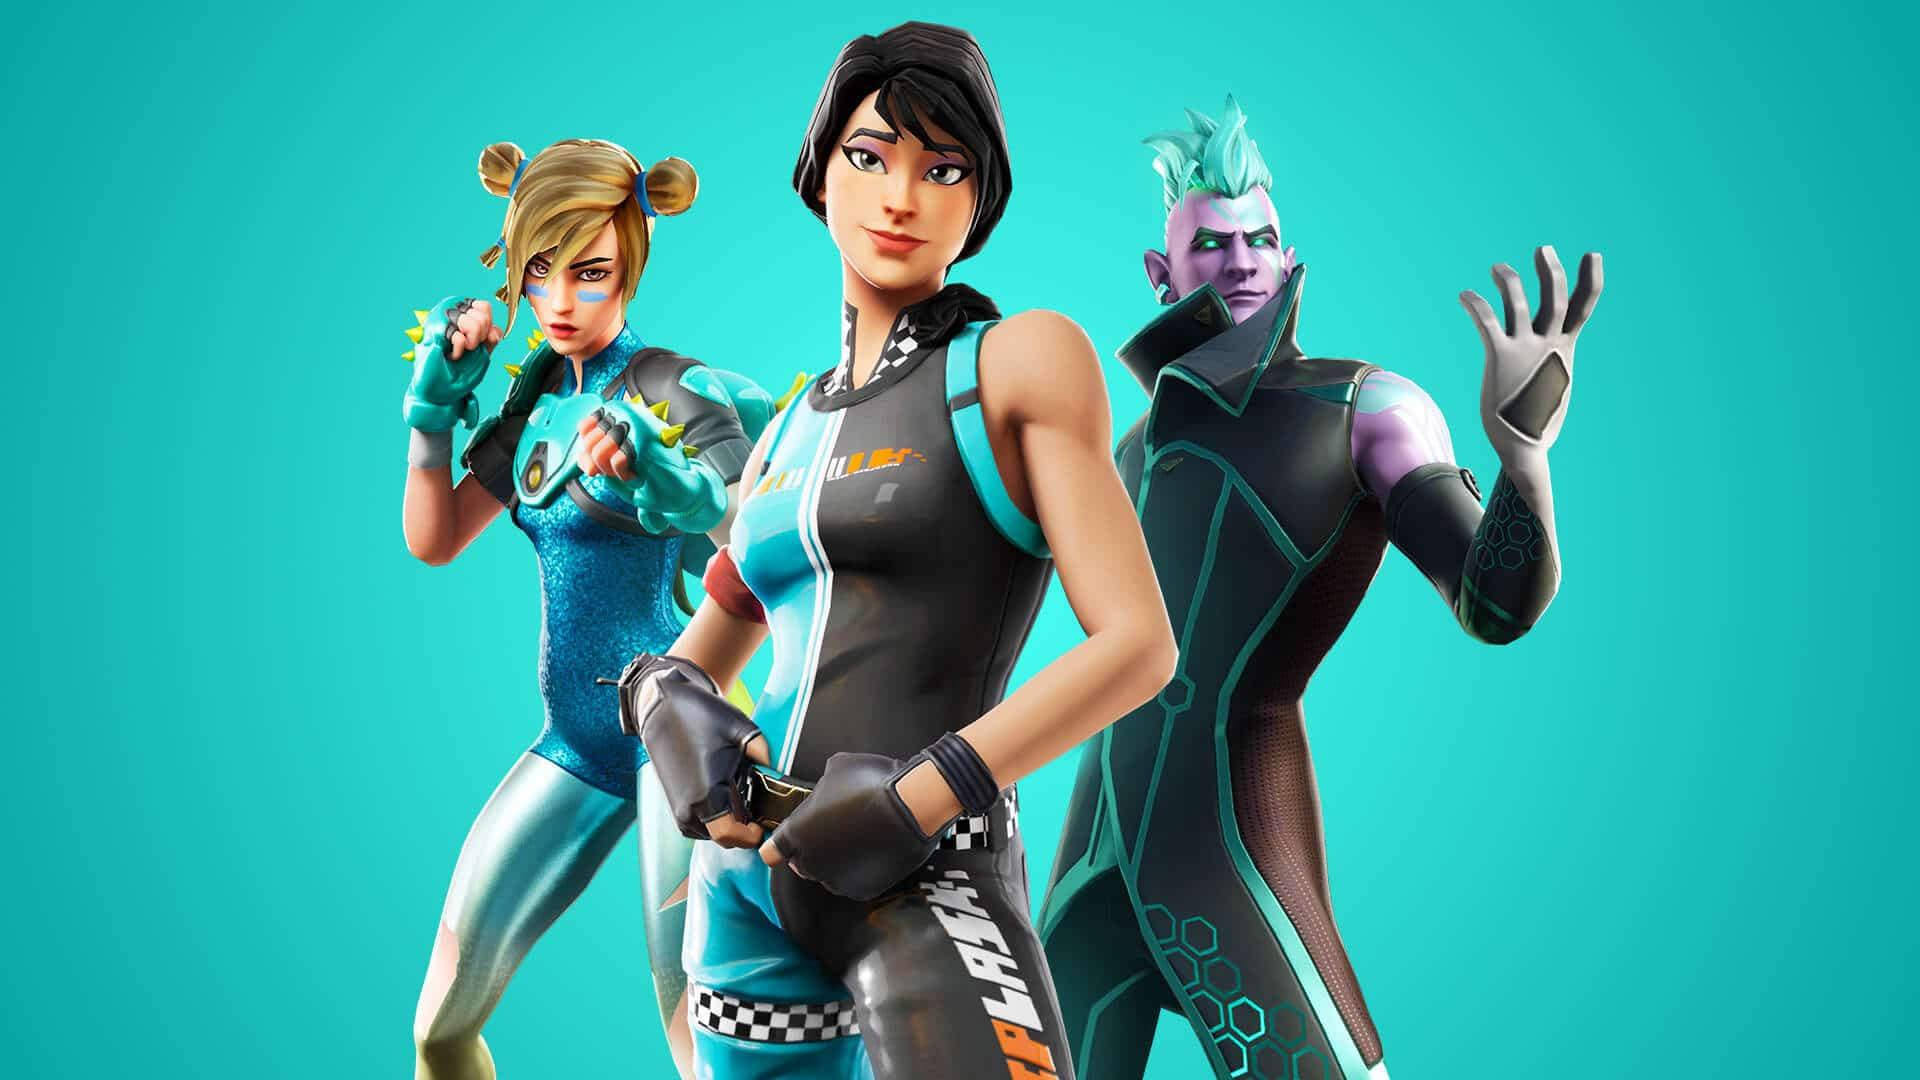 Fortnite blog what s new in creative v11 30 11CM DevUpdate NewsHeader 1920x1080 3f04eb2a3aed82b39ad607ab8f382c1f194f311d